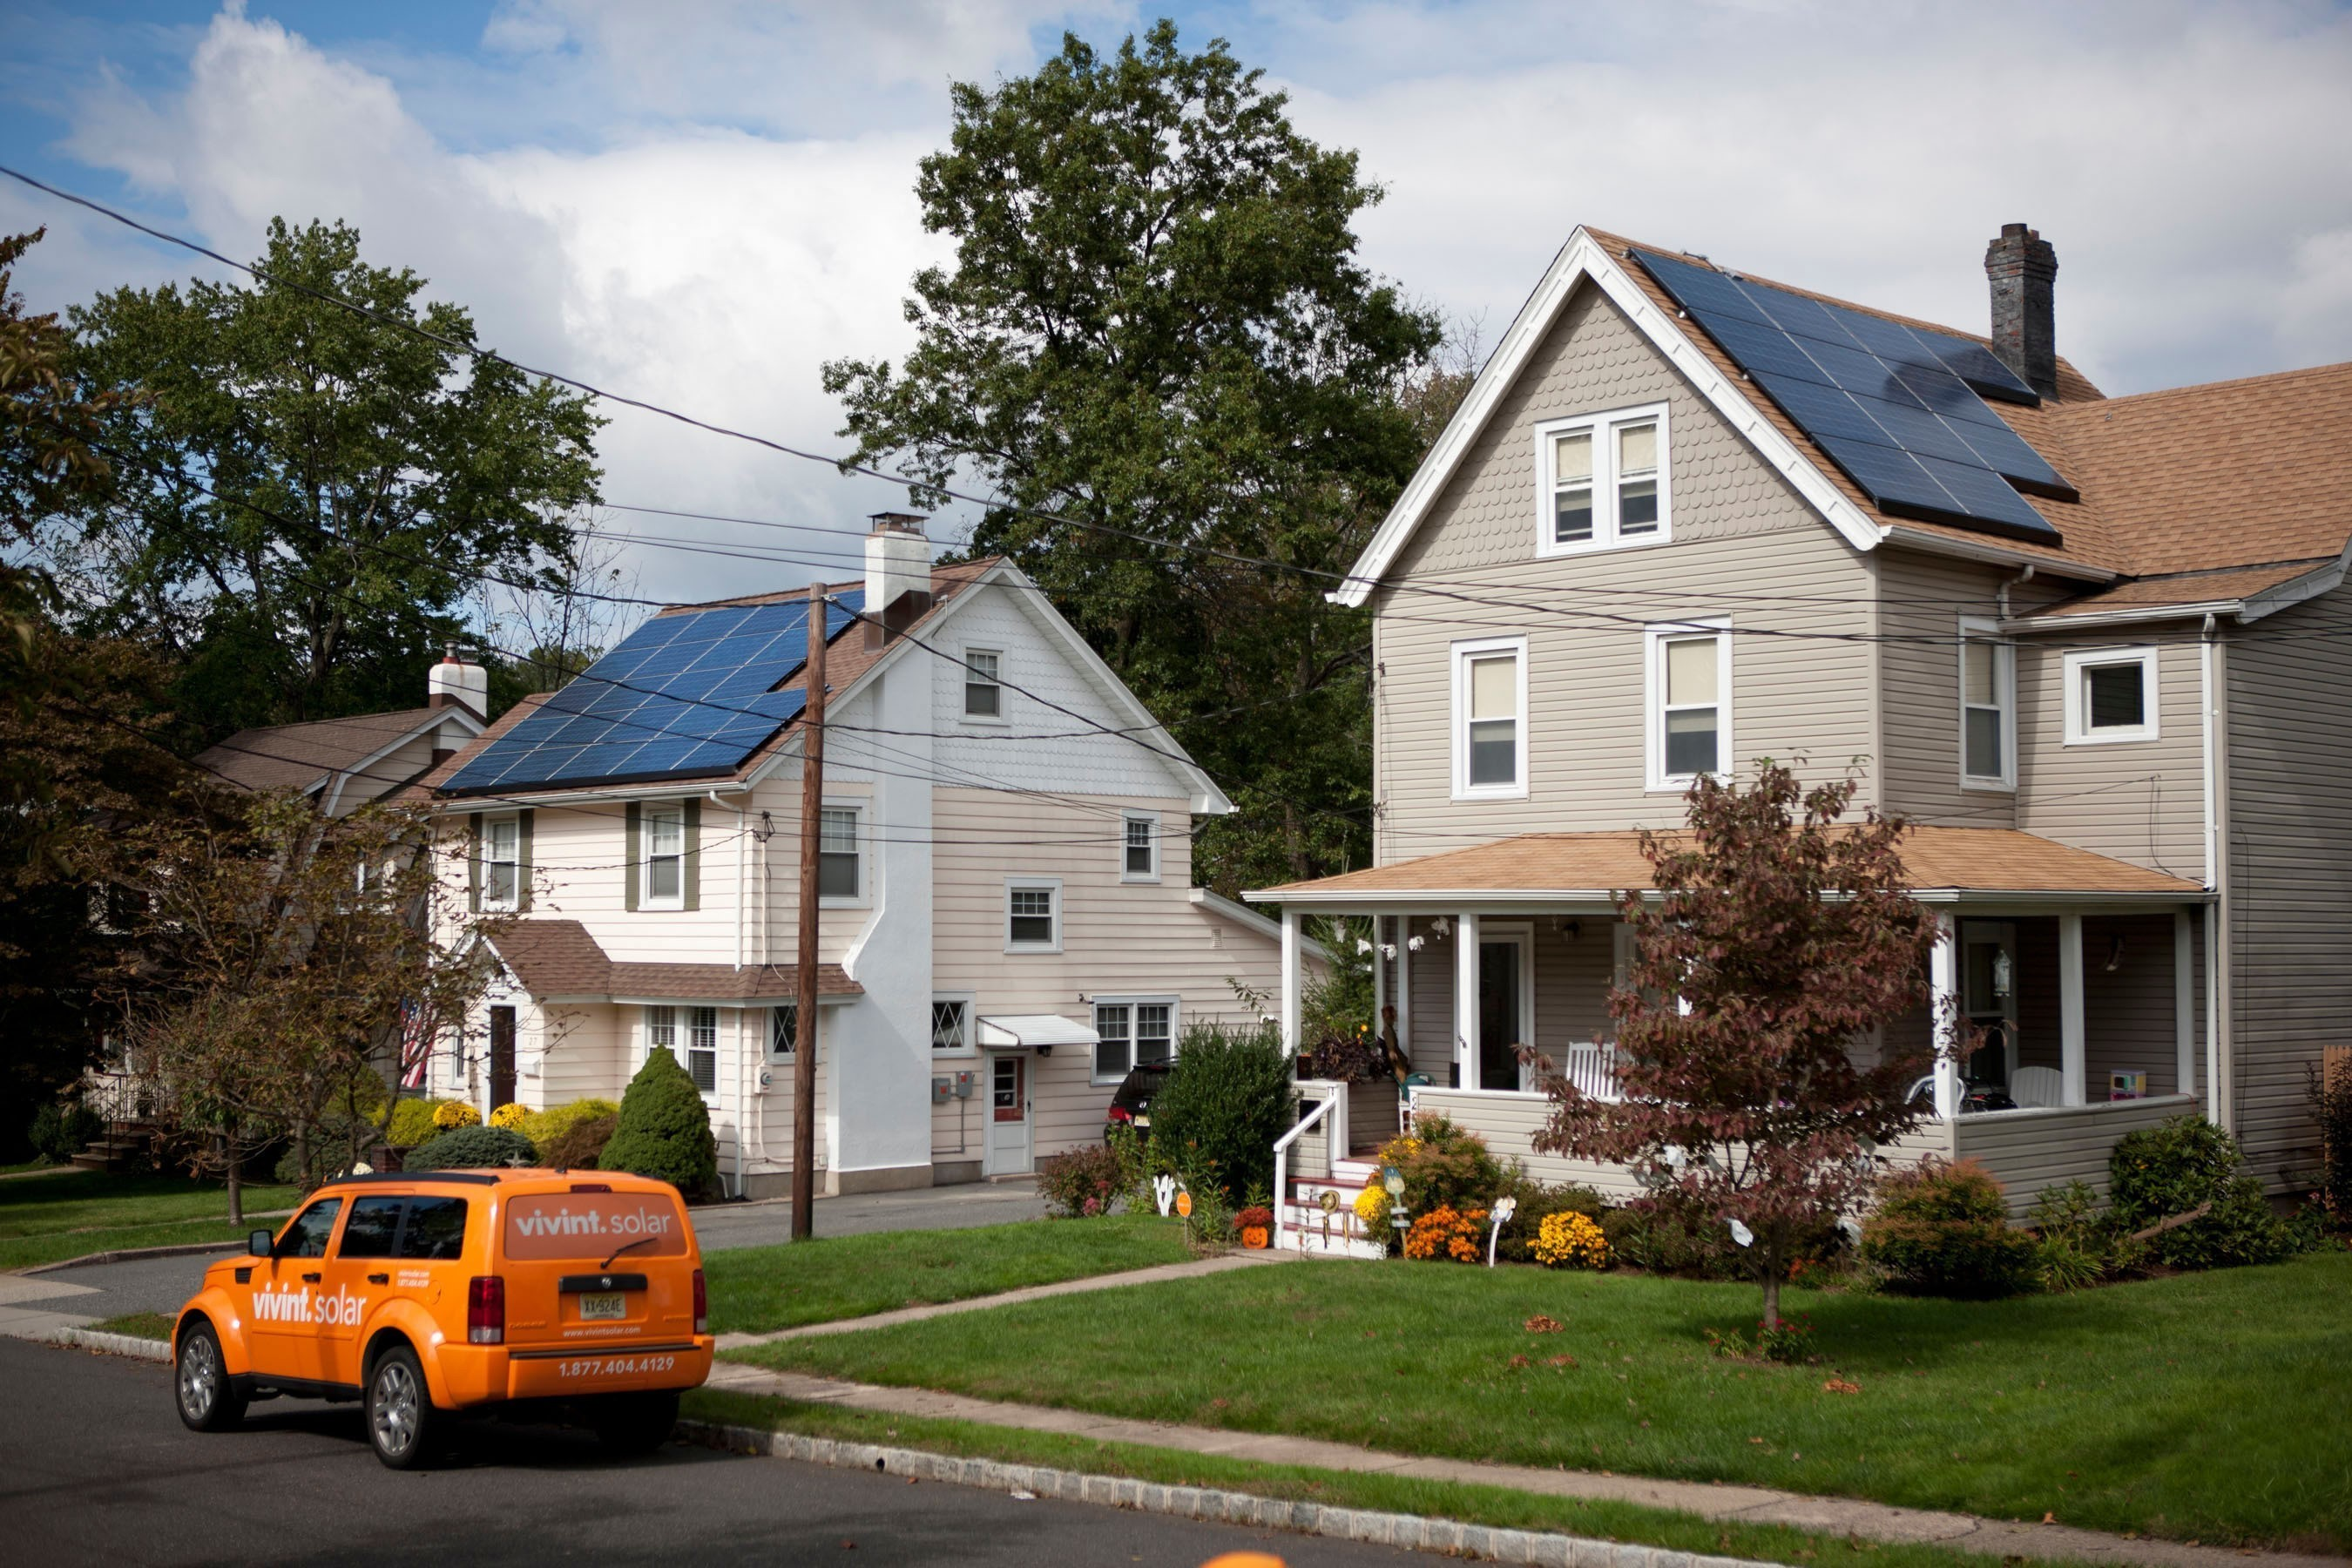 Vivint Solar Plans to Open More Than 20 New Offices in 2015